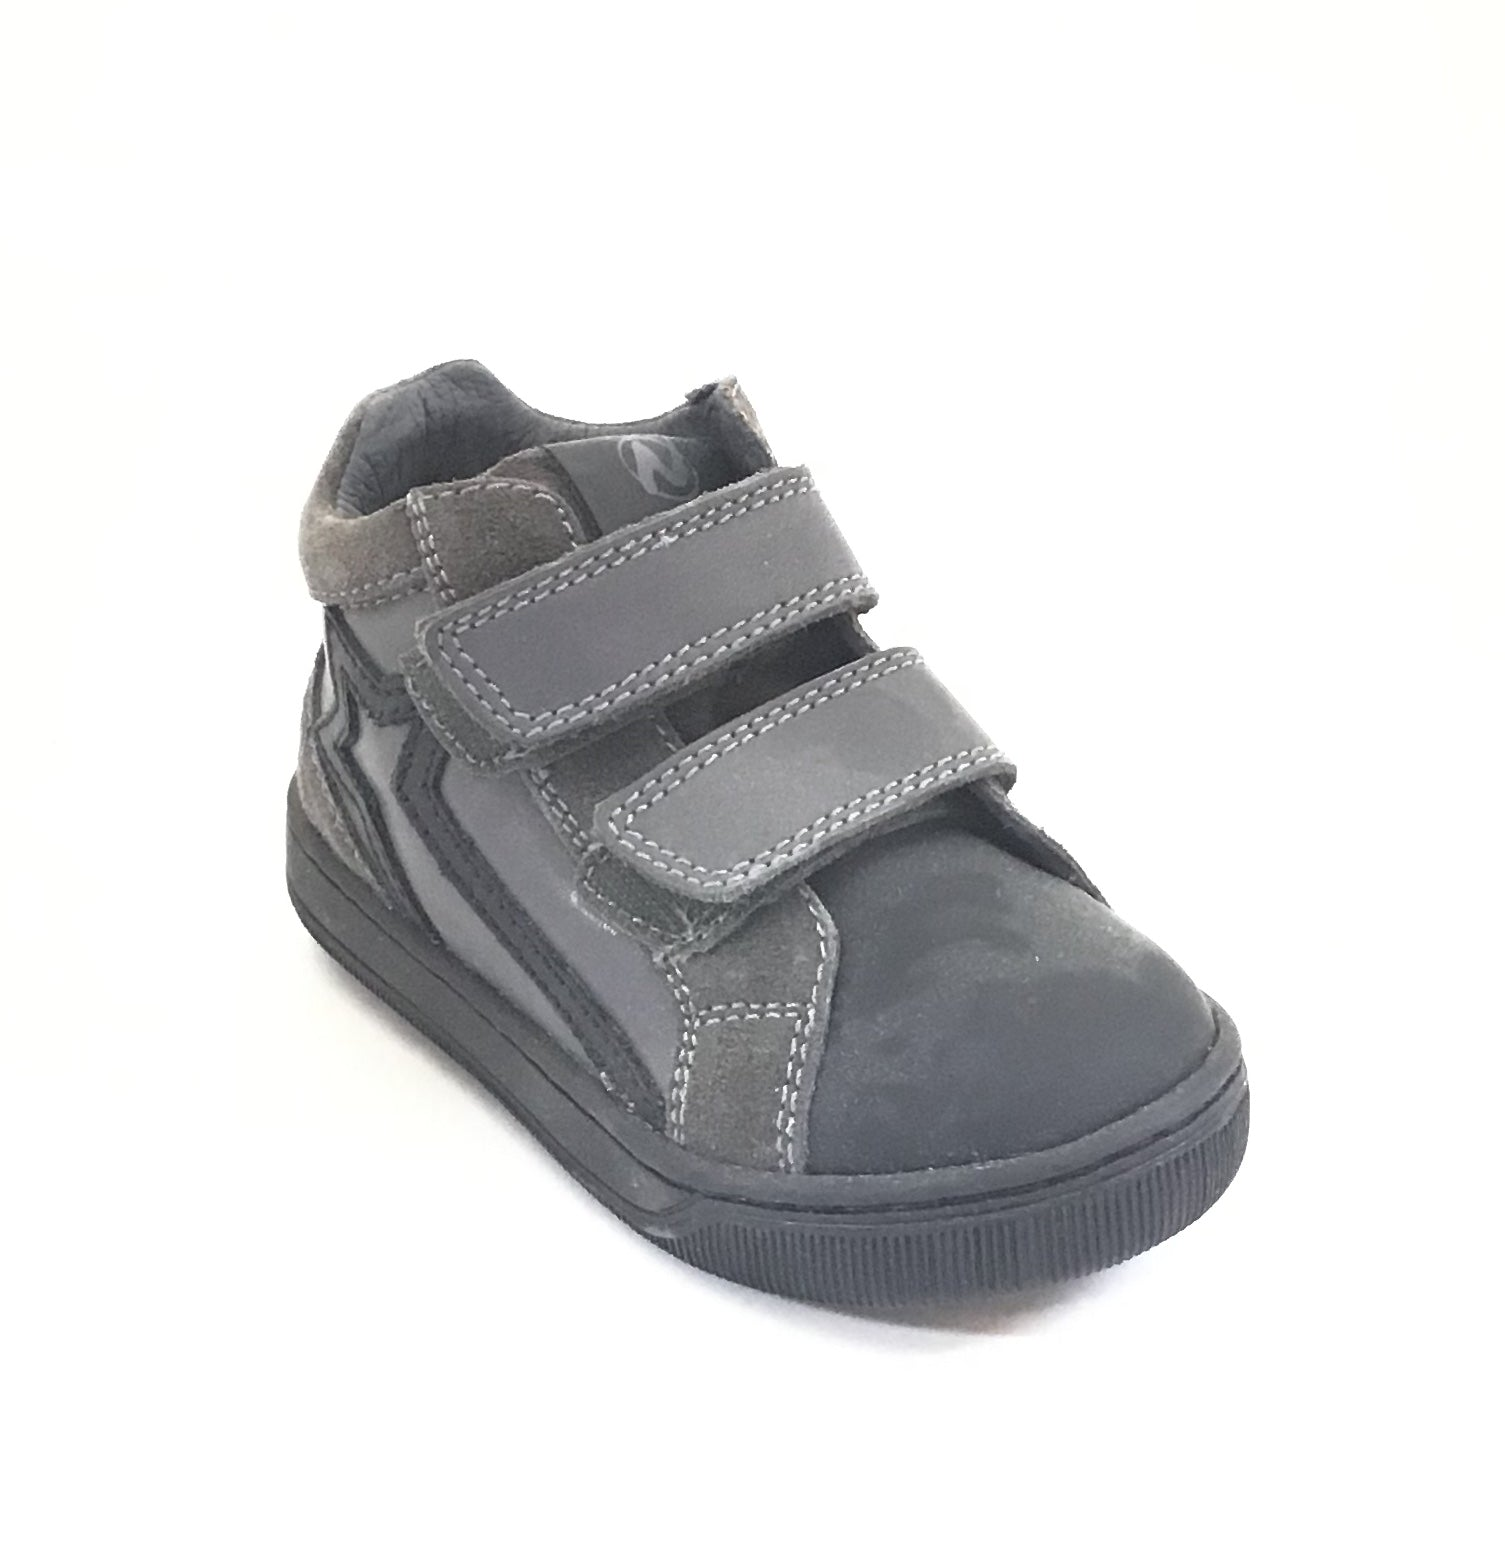 Naturino Charcoal and Black Shoe with Double Velcro